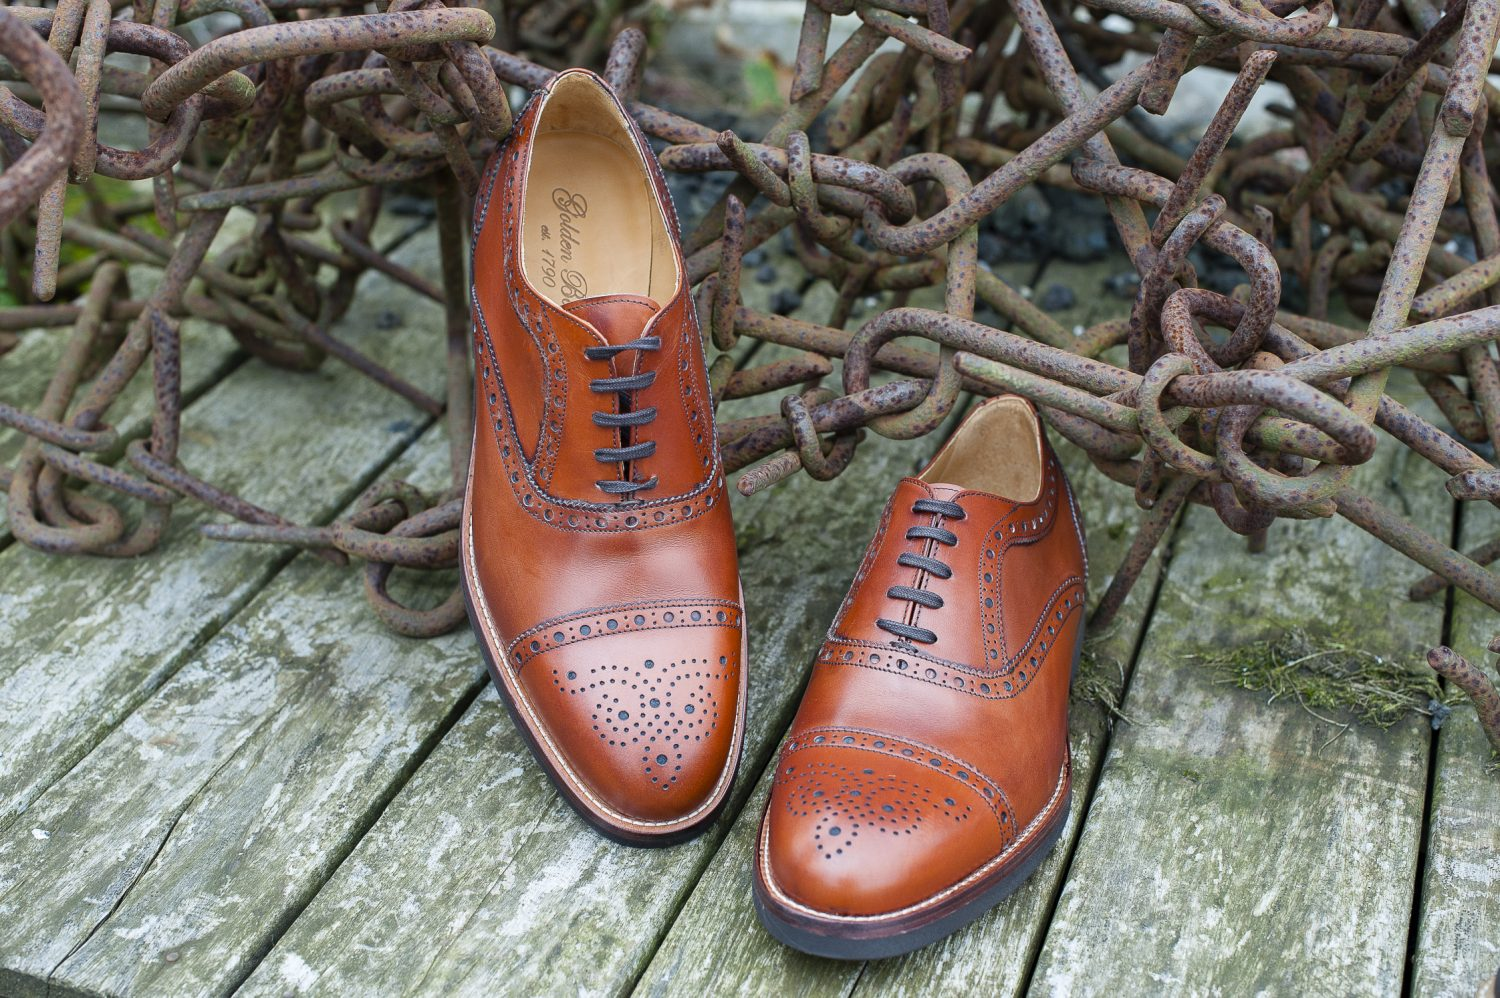 Brogues, £119, £125, The Golden Boot, Maidstone thegoldenboot.co.uk